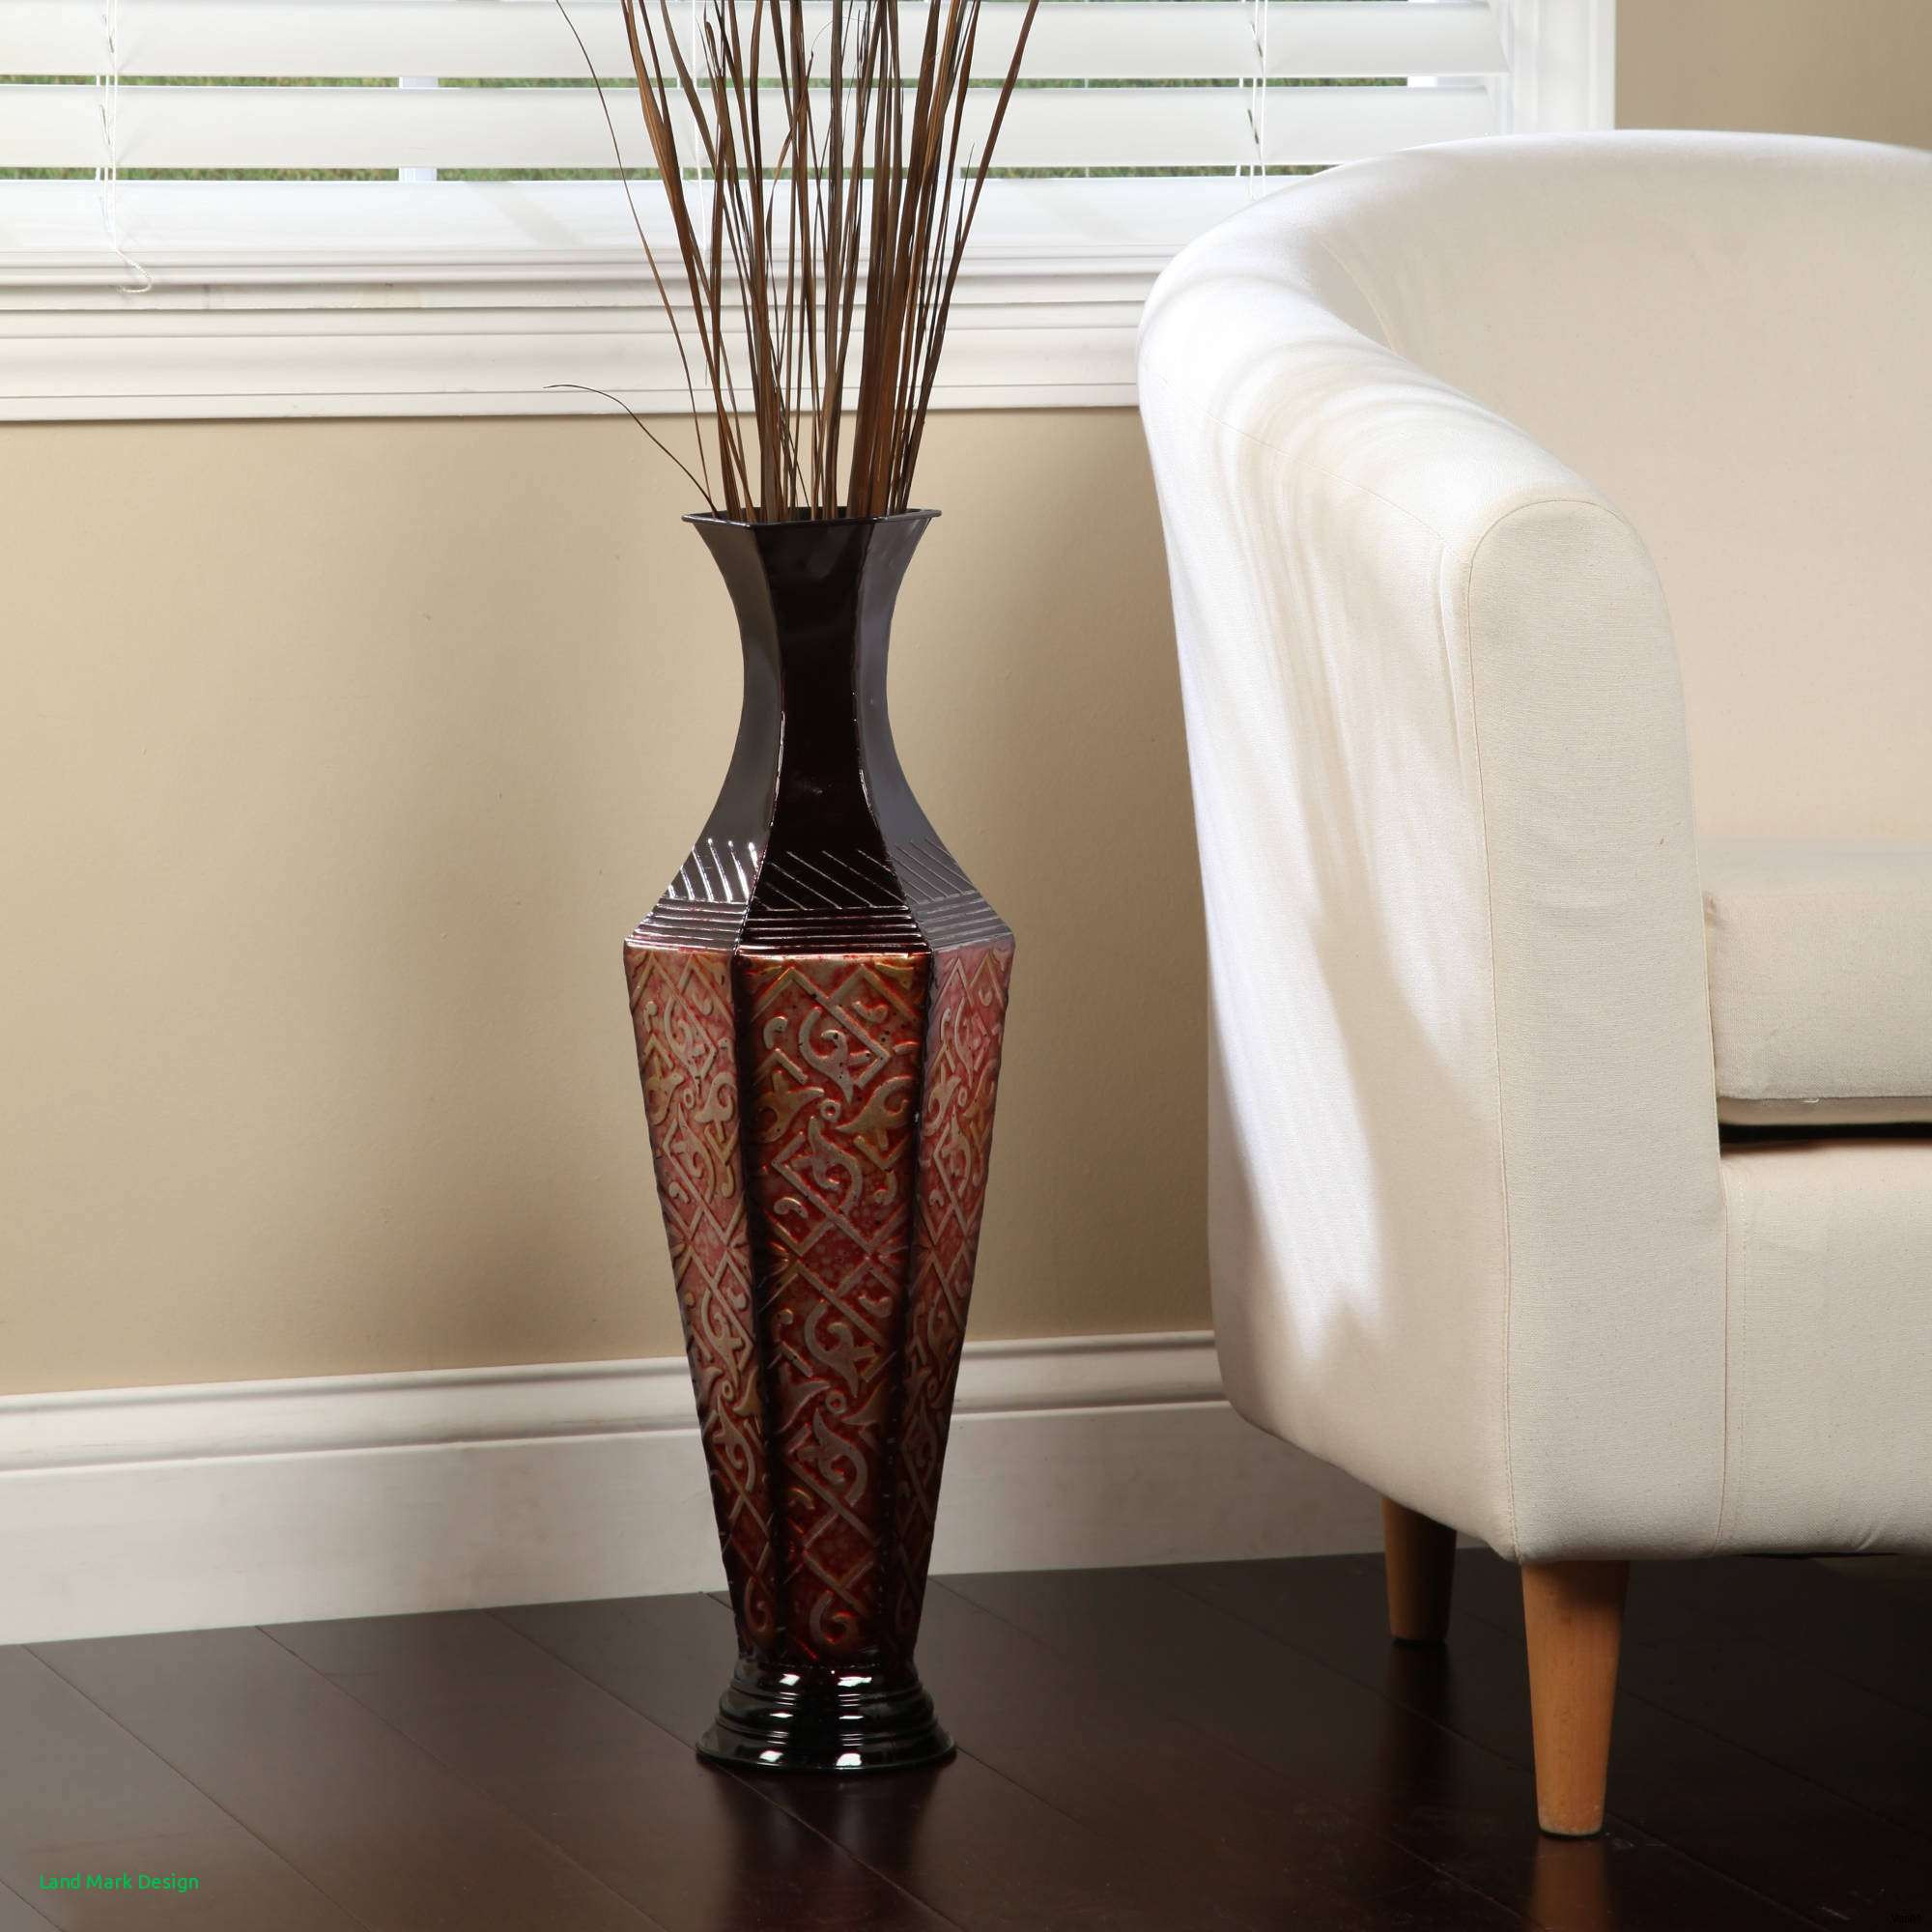 bamboo floor vases cheap of large wood floor vase collection vases flower floor vase with intended for large wood floor vase stock floor vases of large wood floor vase collection vases flowe